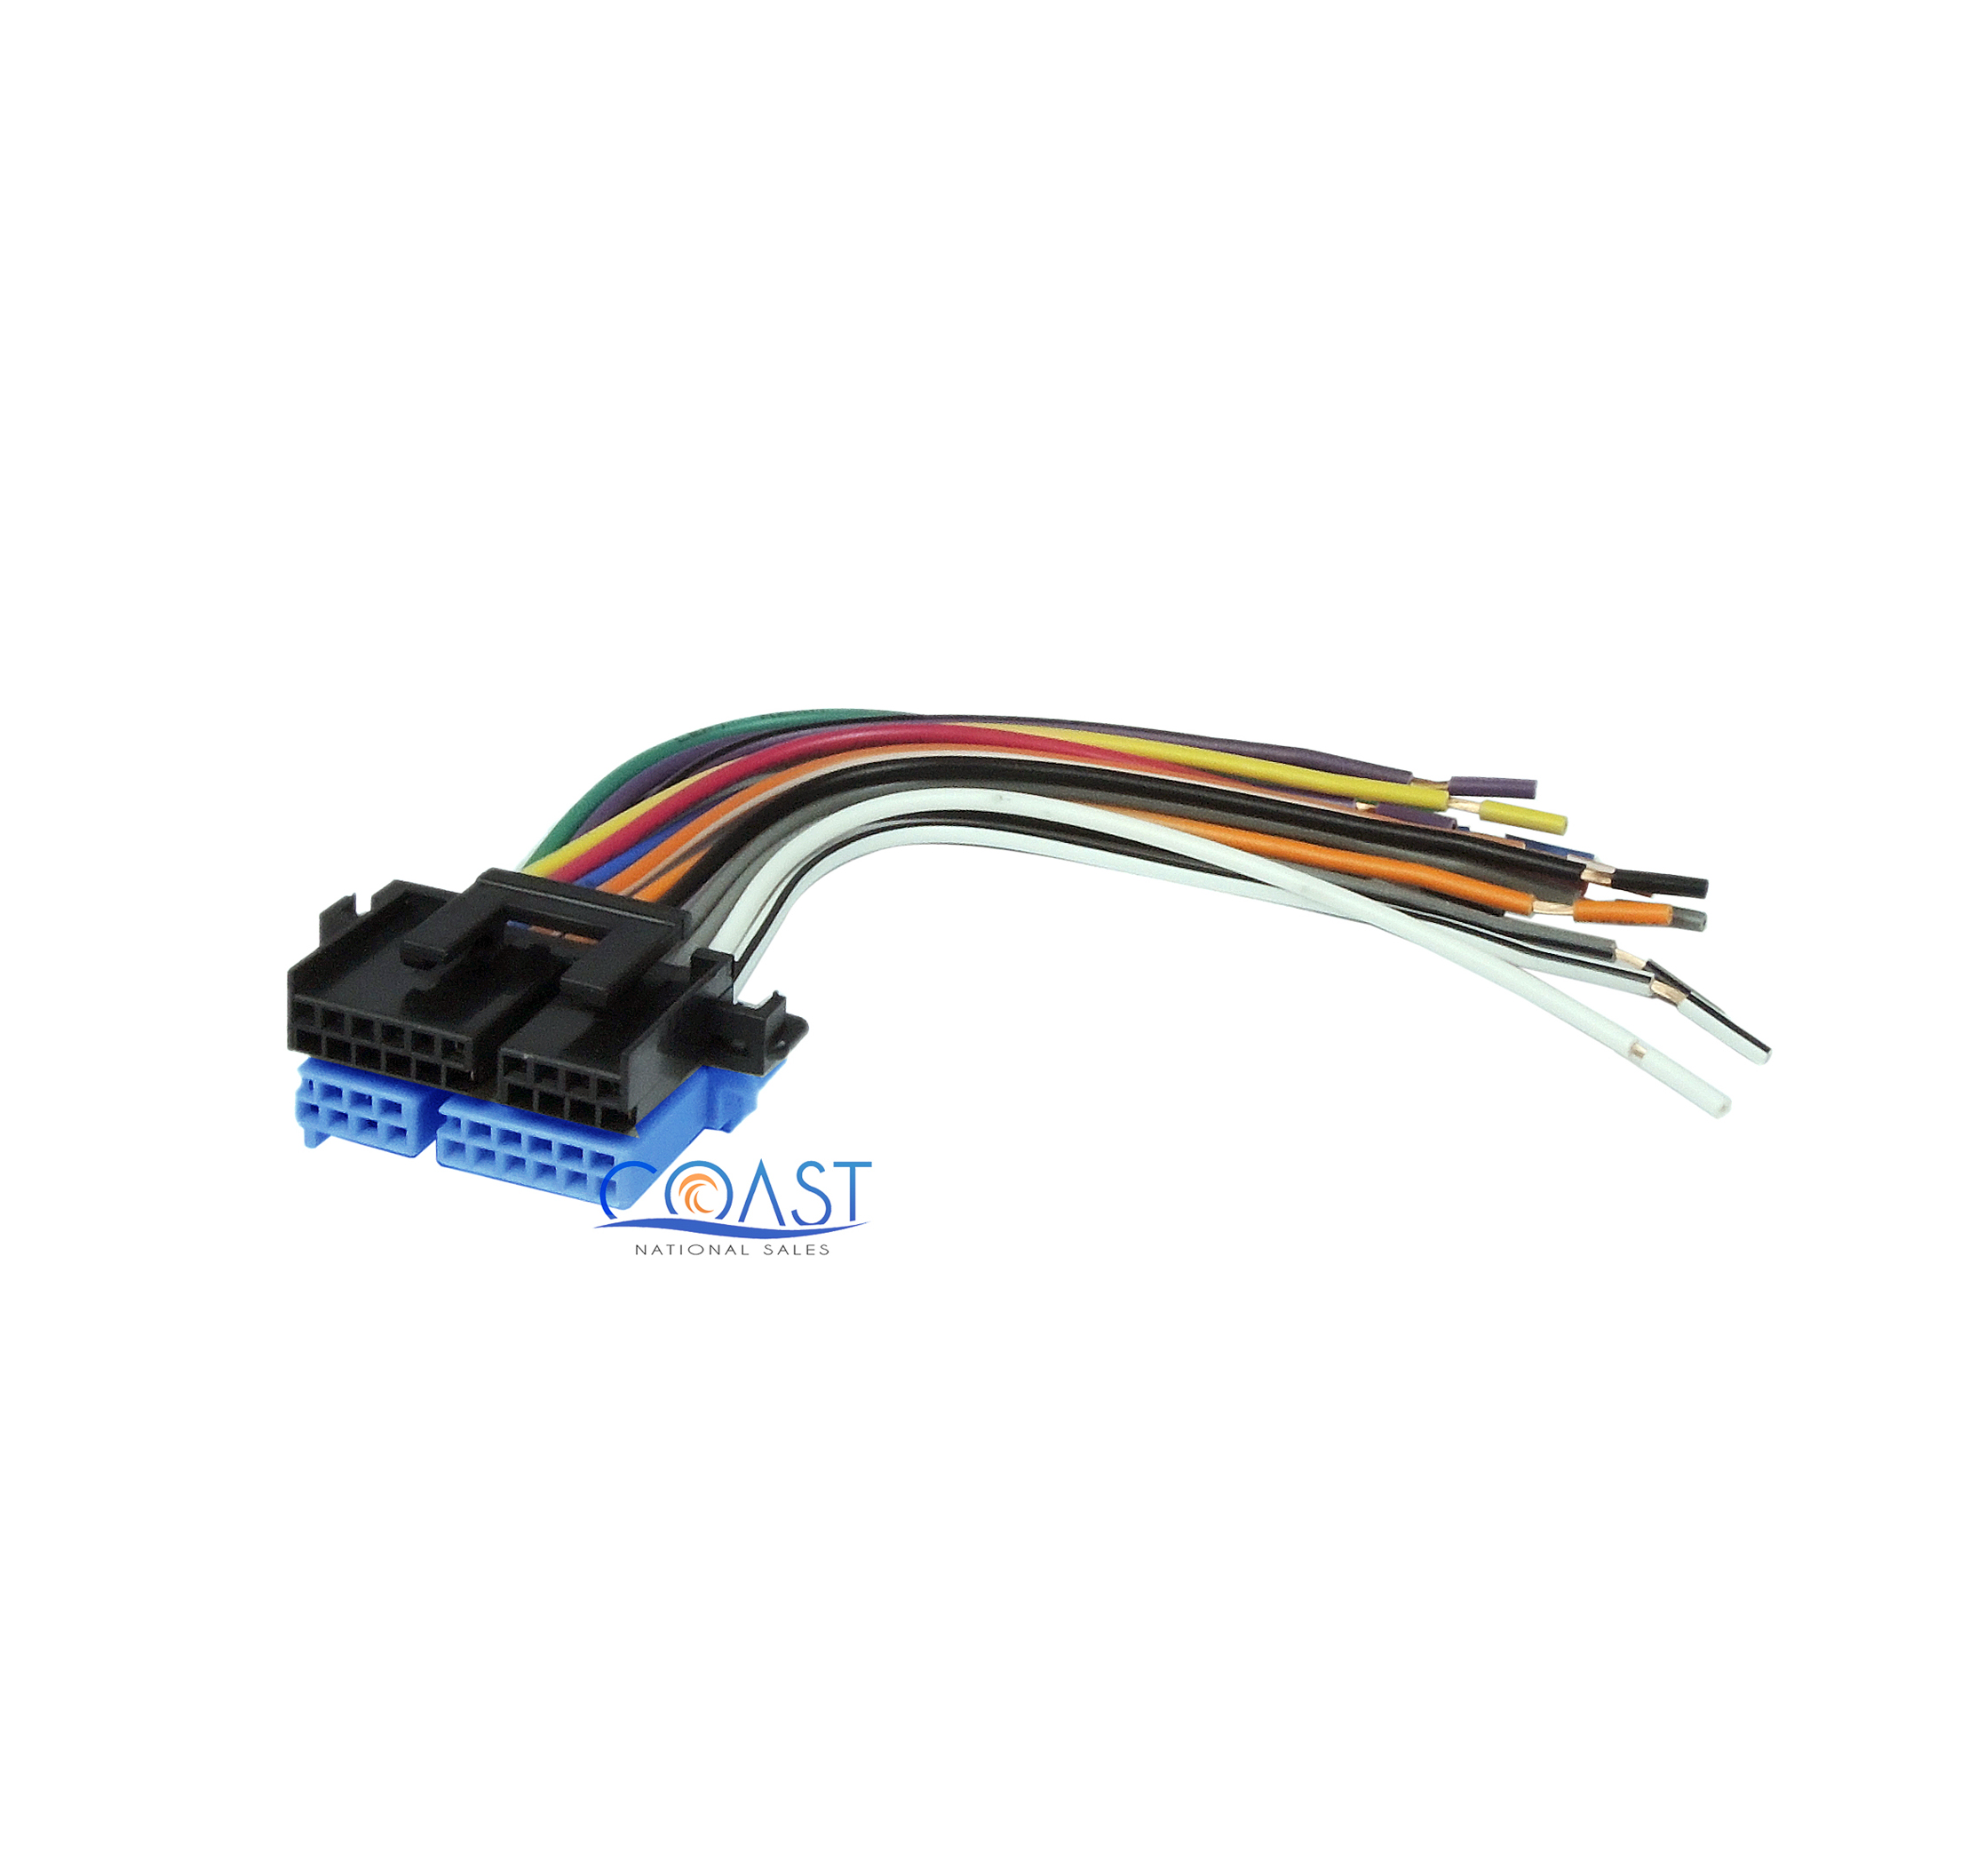 GM 1343M wiring diagram for 2004 chevy silverado 2500 the wiring diagram 2002 chevy silverado 2500hd stereo wiring diagram at creativeand.co